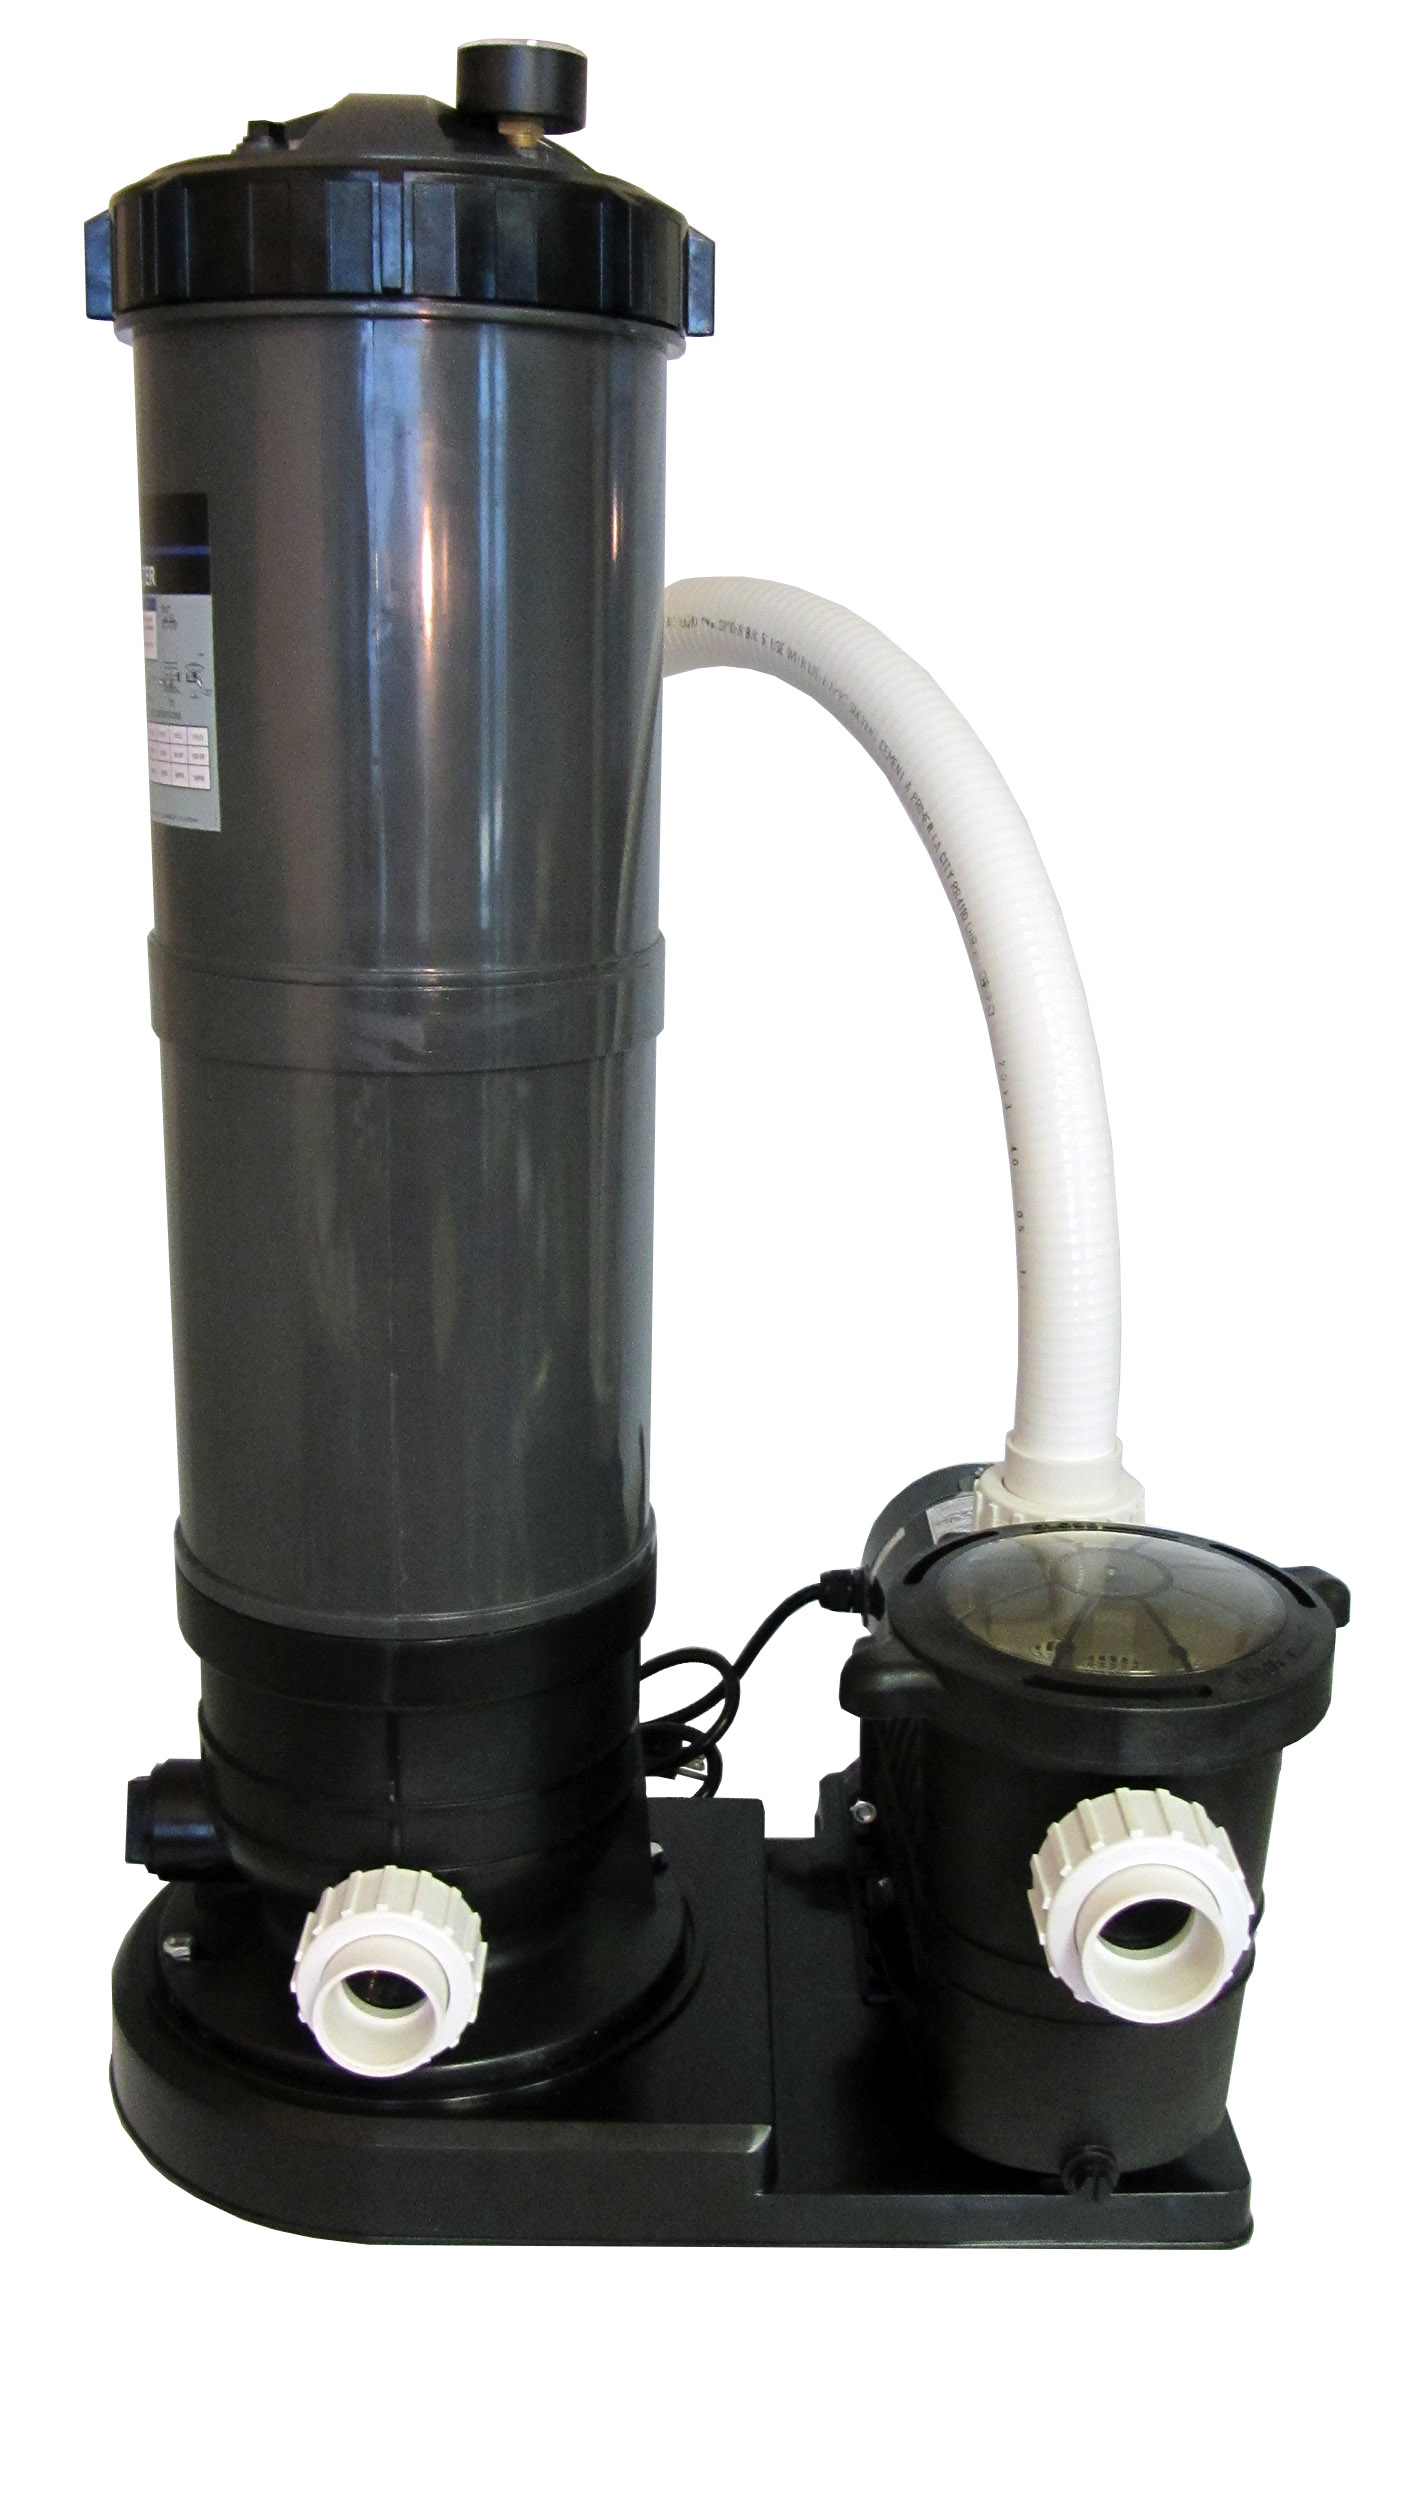 Pool Filter Pump Pressure In Ground Swimming Pool Cartridge Filter System With 2